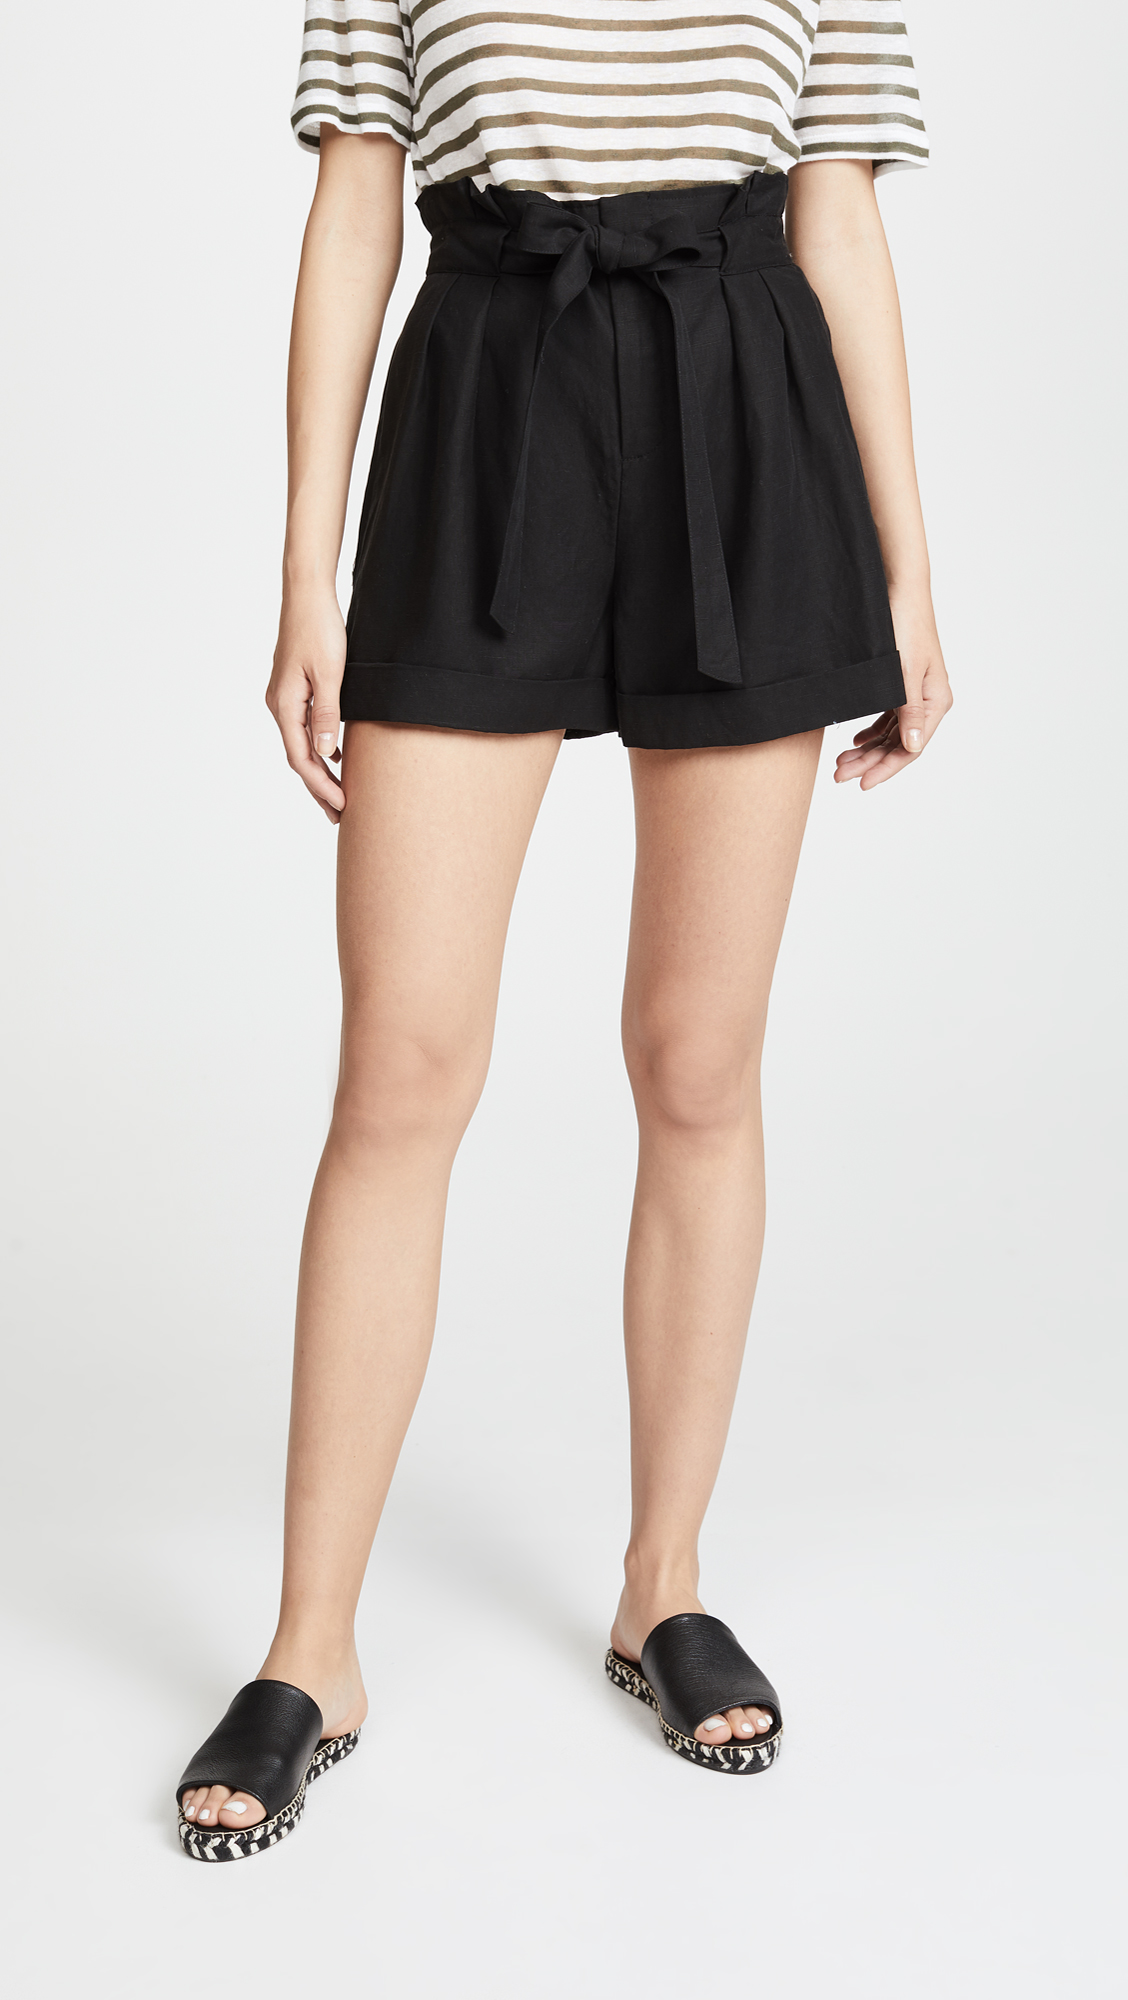 Black Shorts with Bow